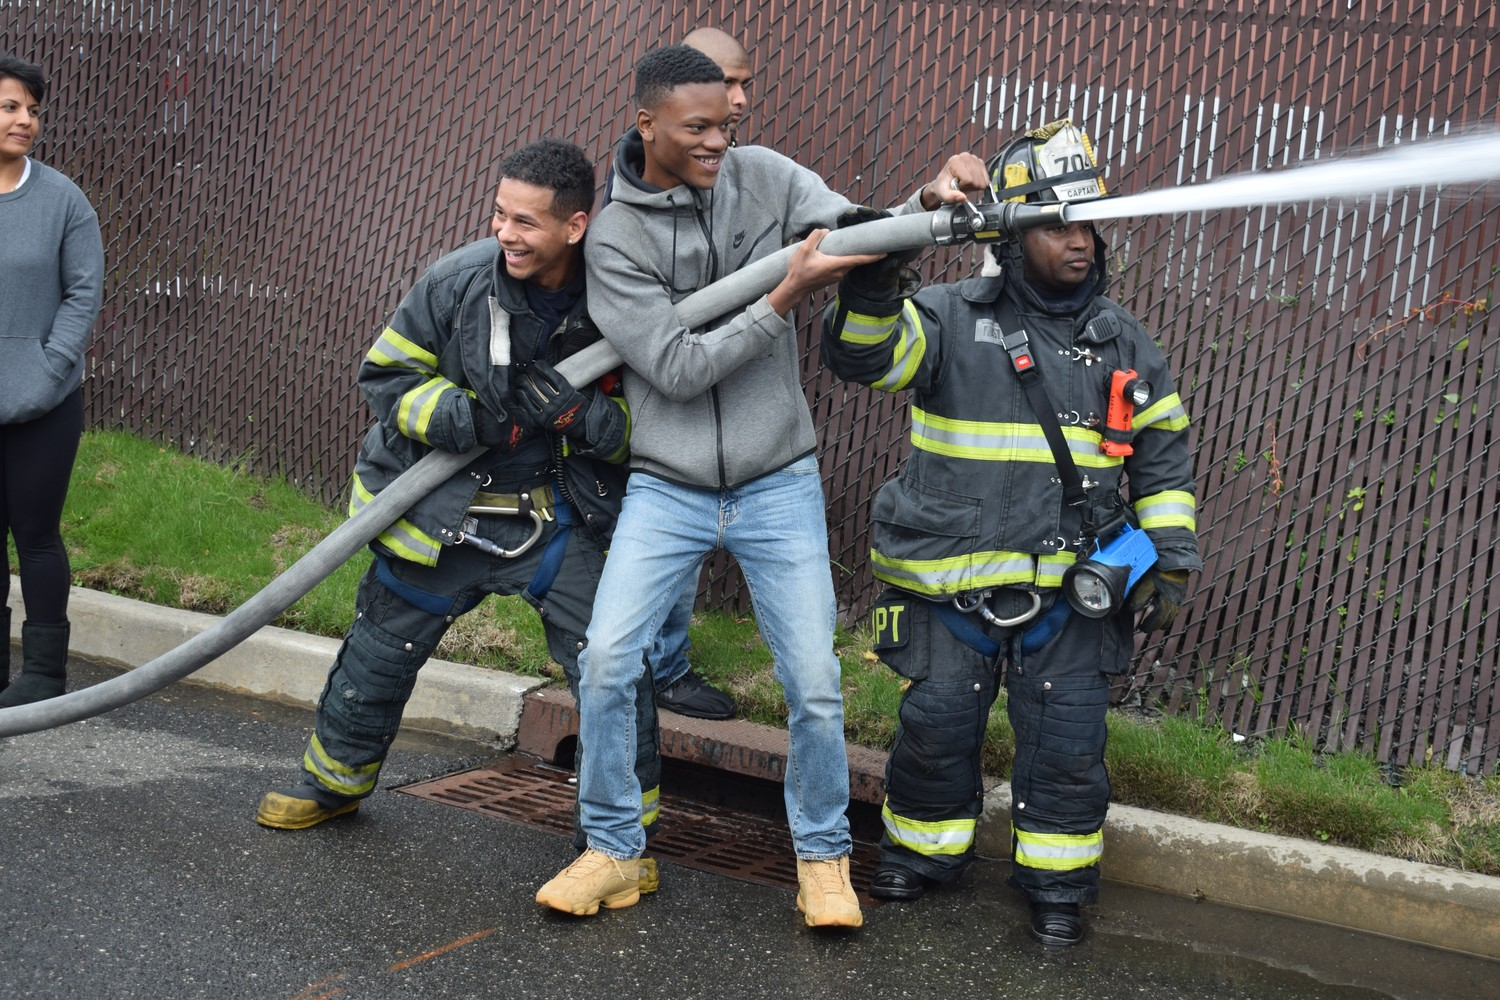 Elmont Memorial High School student Marven Bernard, 17, tried out one of truck's hoses with the help of Engine Company 704 Capt. Lamar Kelly, right, and Engine 4 volunteer firefighter Richard Baker.